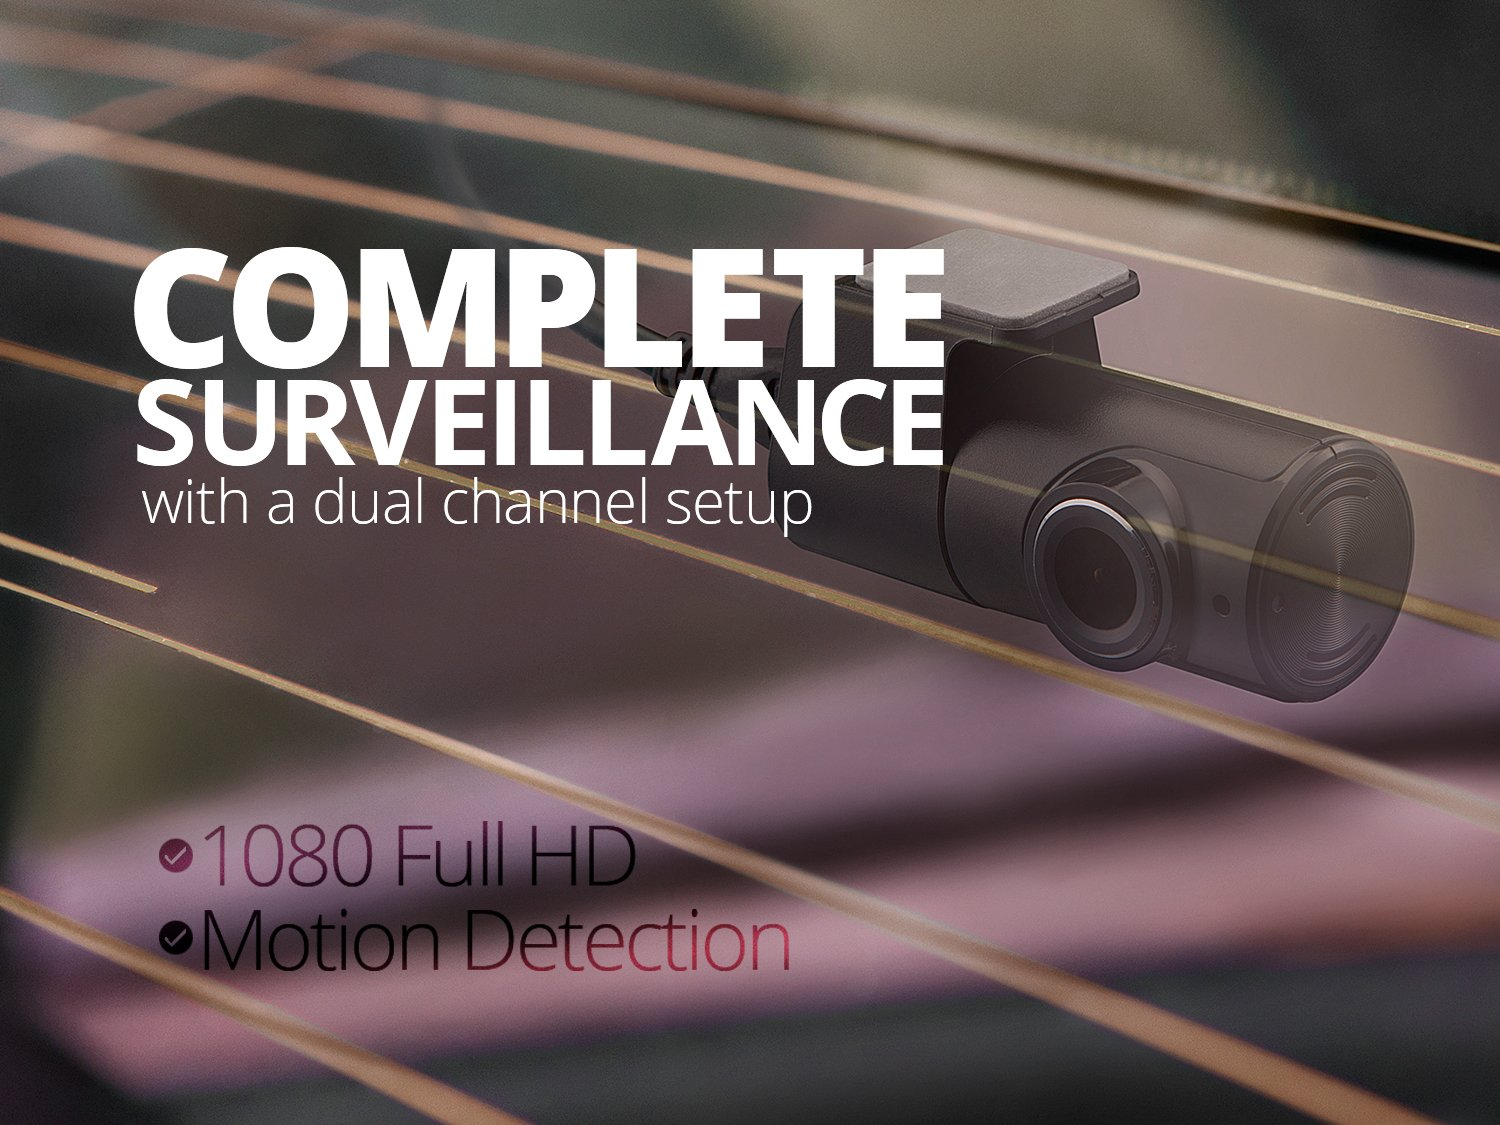 THINKWARE TW-F750D16 F750 2-Channel Dash Cam, 1080P HD Front & Rear, Sony Exmor Sensor, Wi-Fi, Dual Save Technology, Parking Mode, GPS, 16GB SD Card by Thinkware (Image #6)